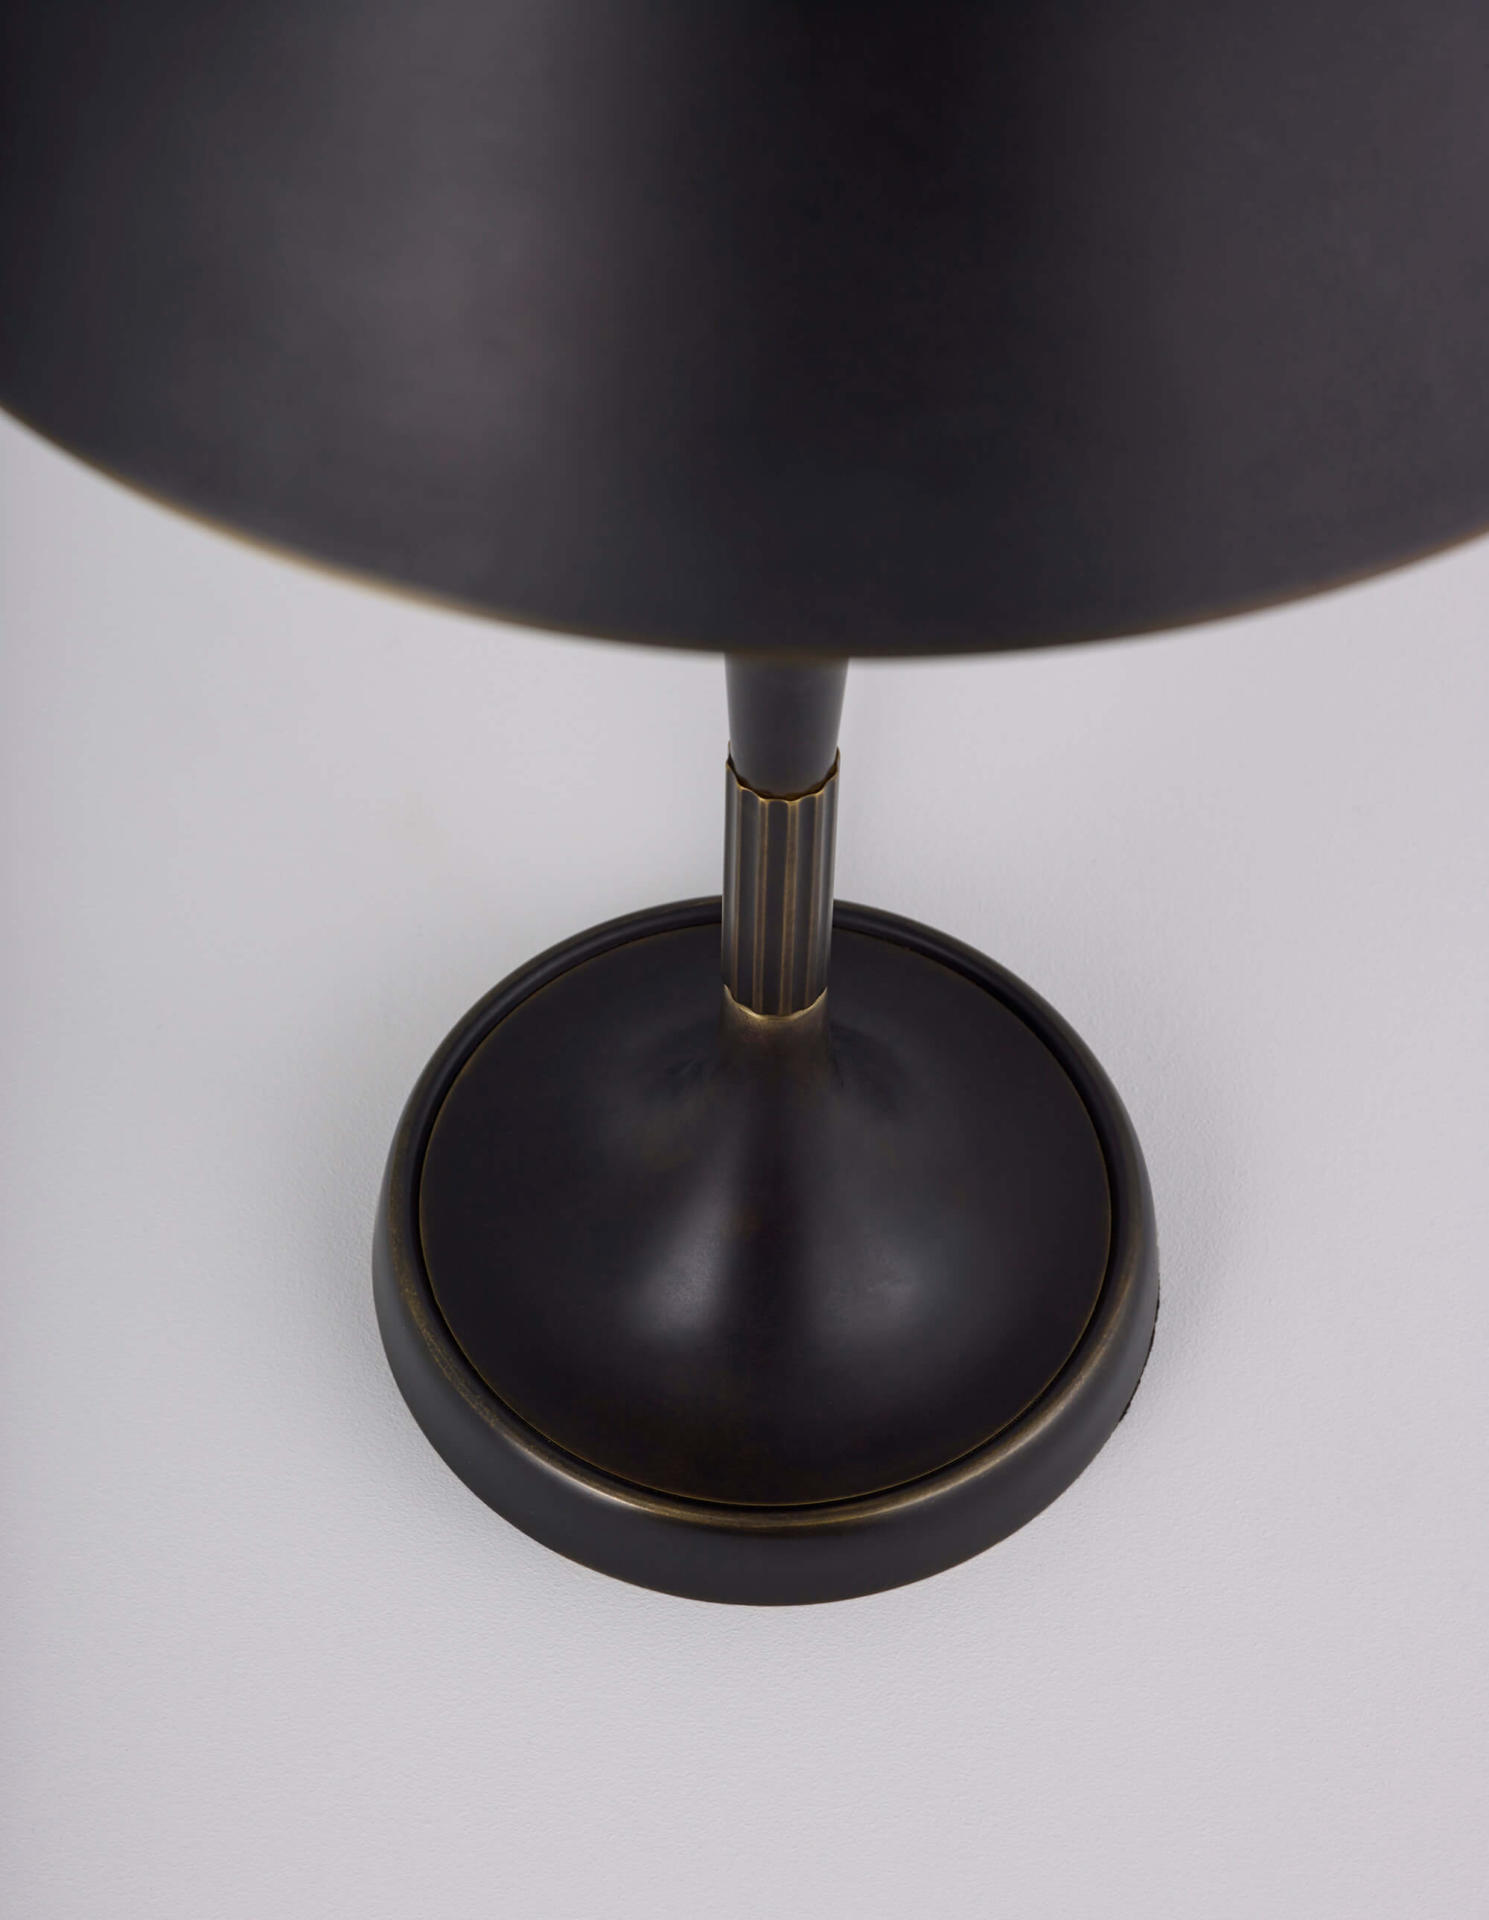 the brass shade of the Bourse table lamp